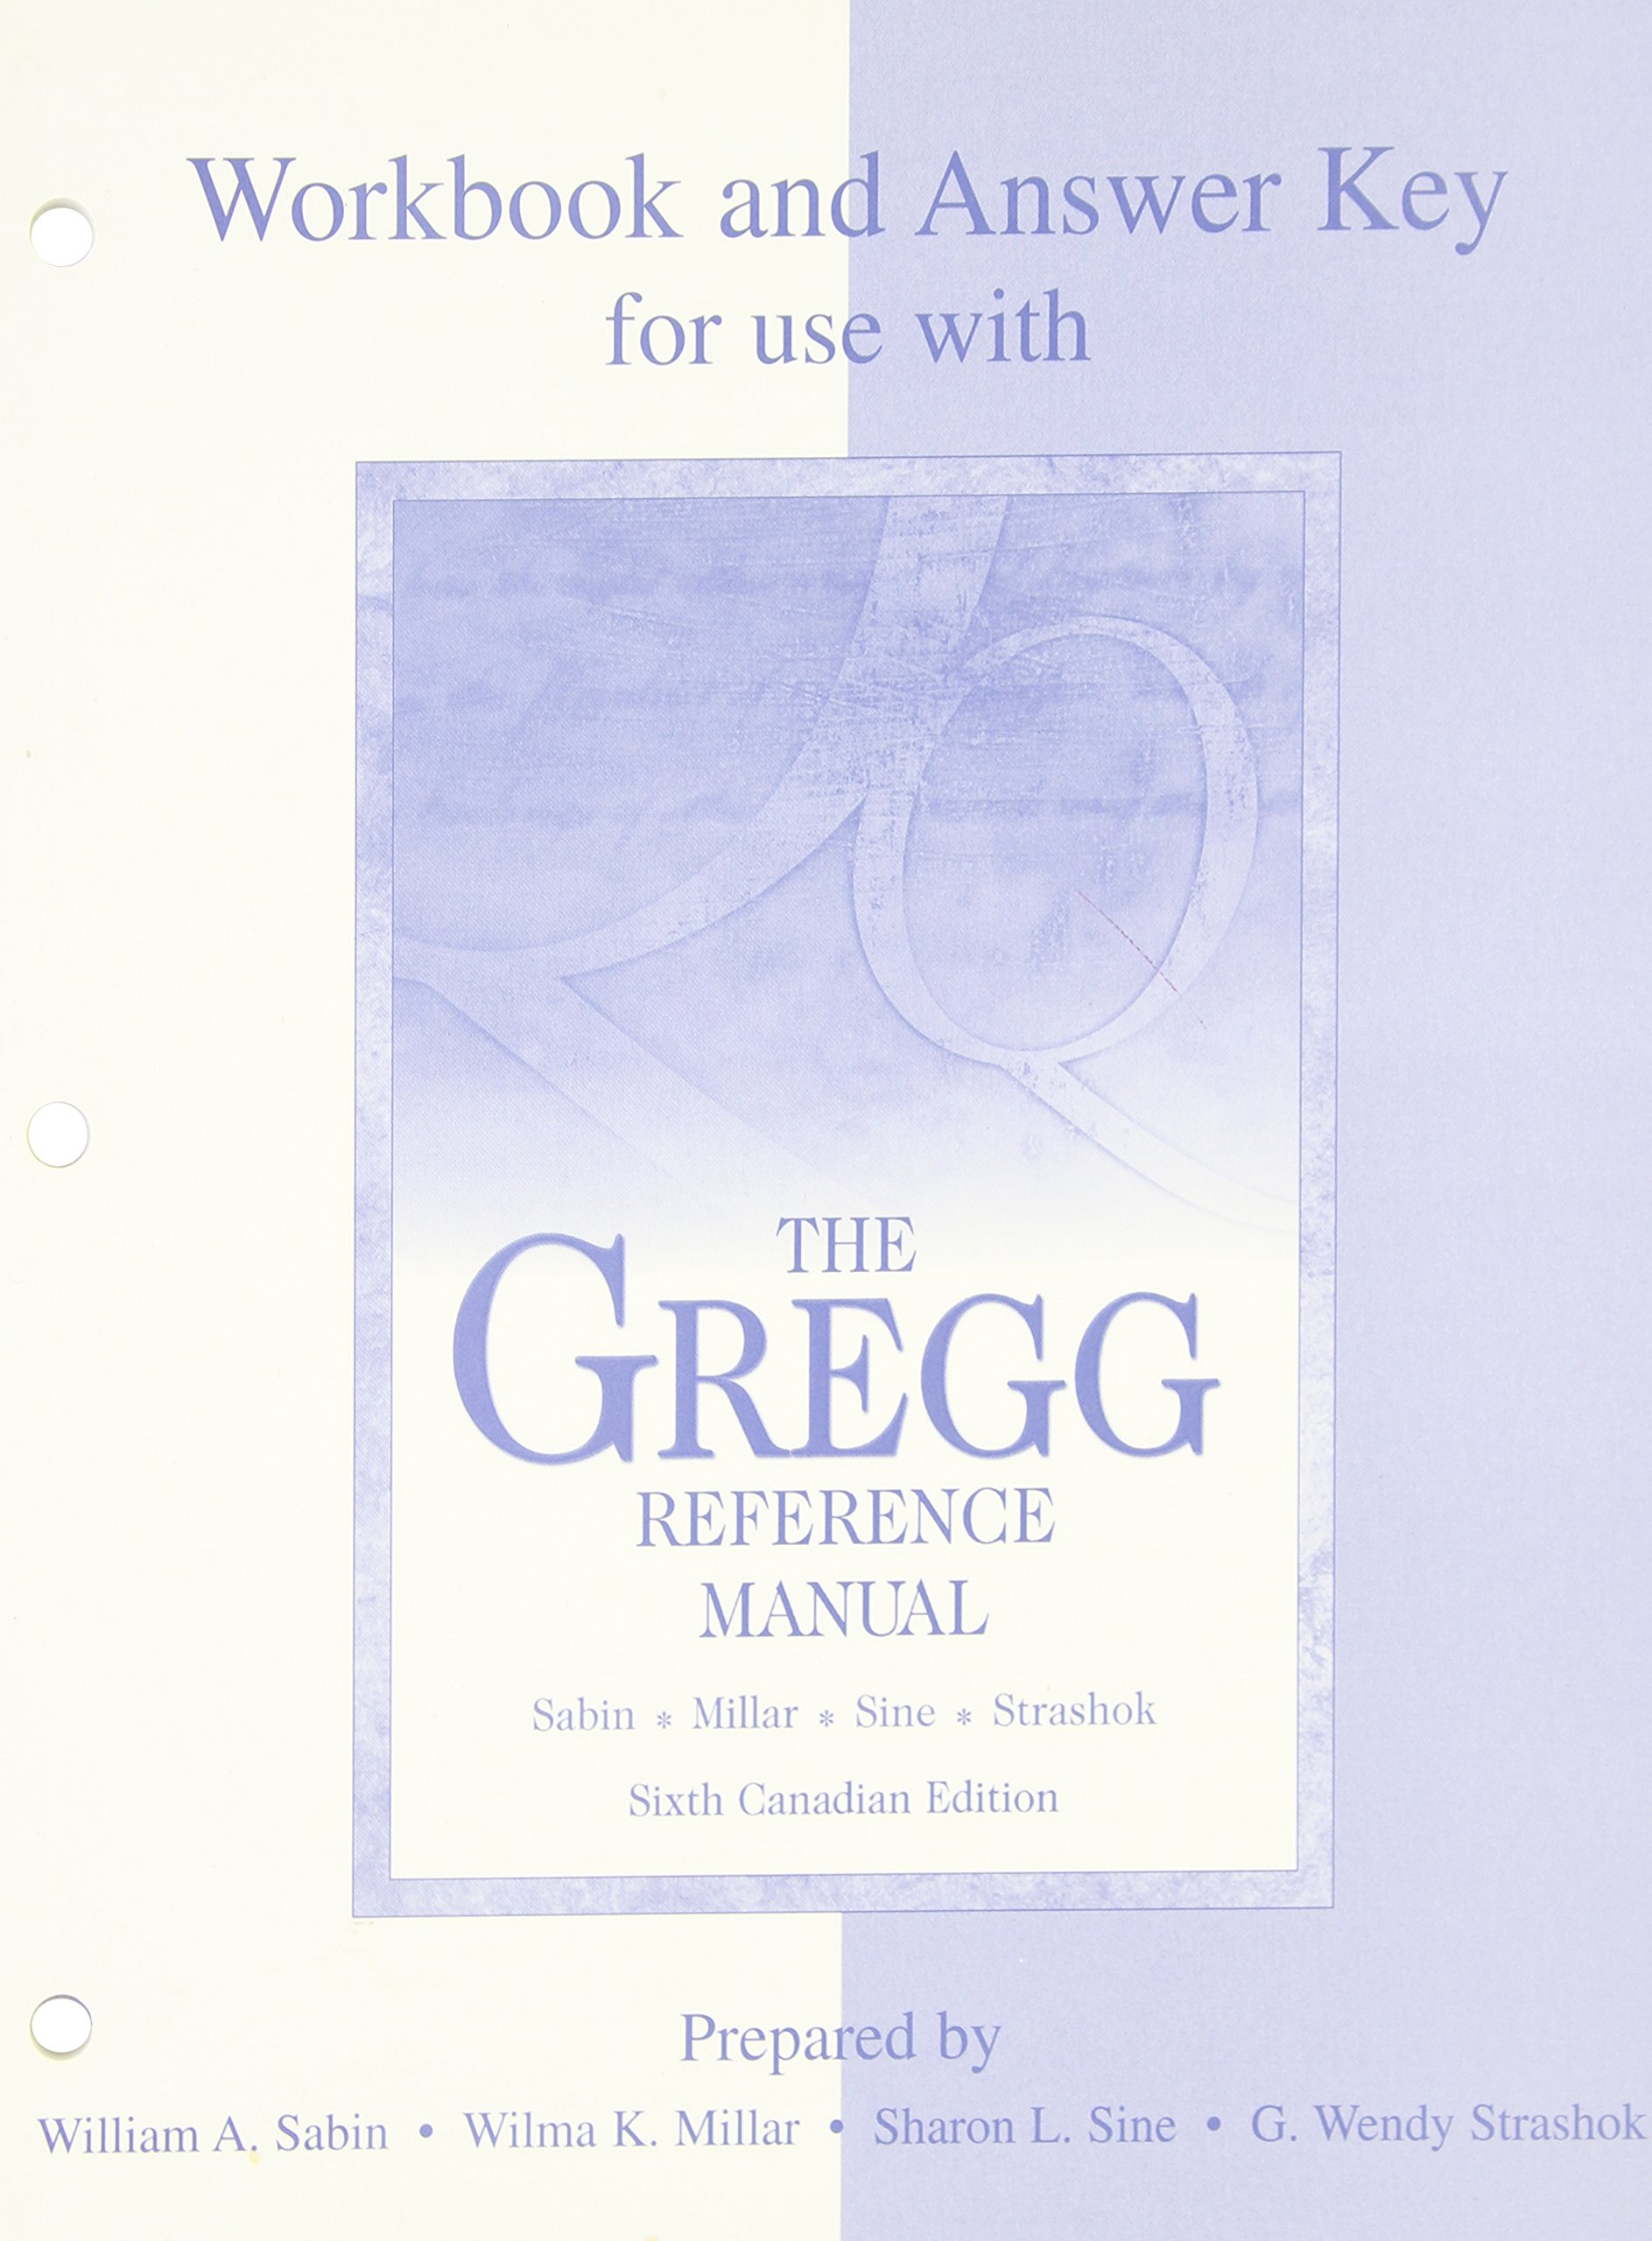 Workbook and Answer Key for use with The Gregg Reference Manual:  9780070891678: Books - Amazon.ca